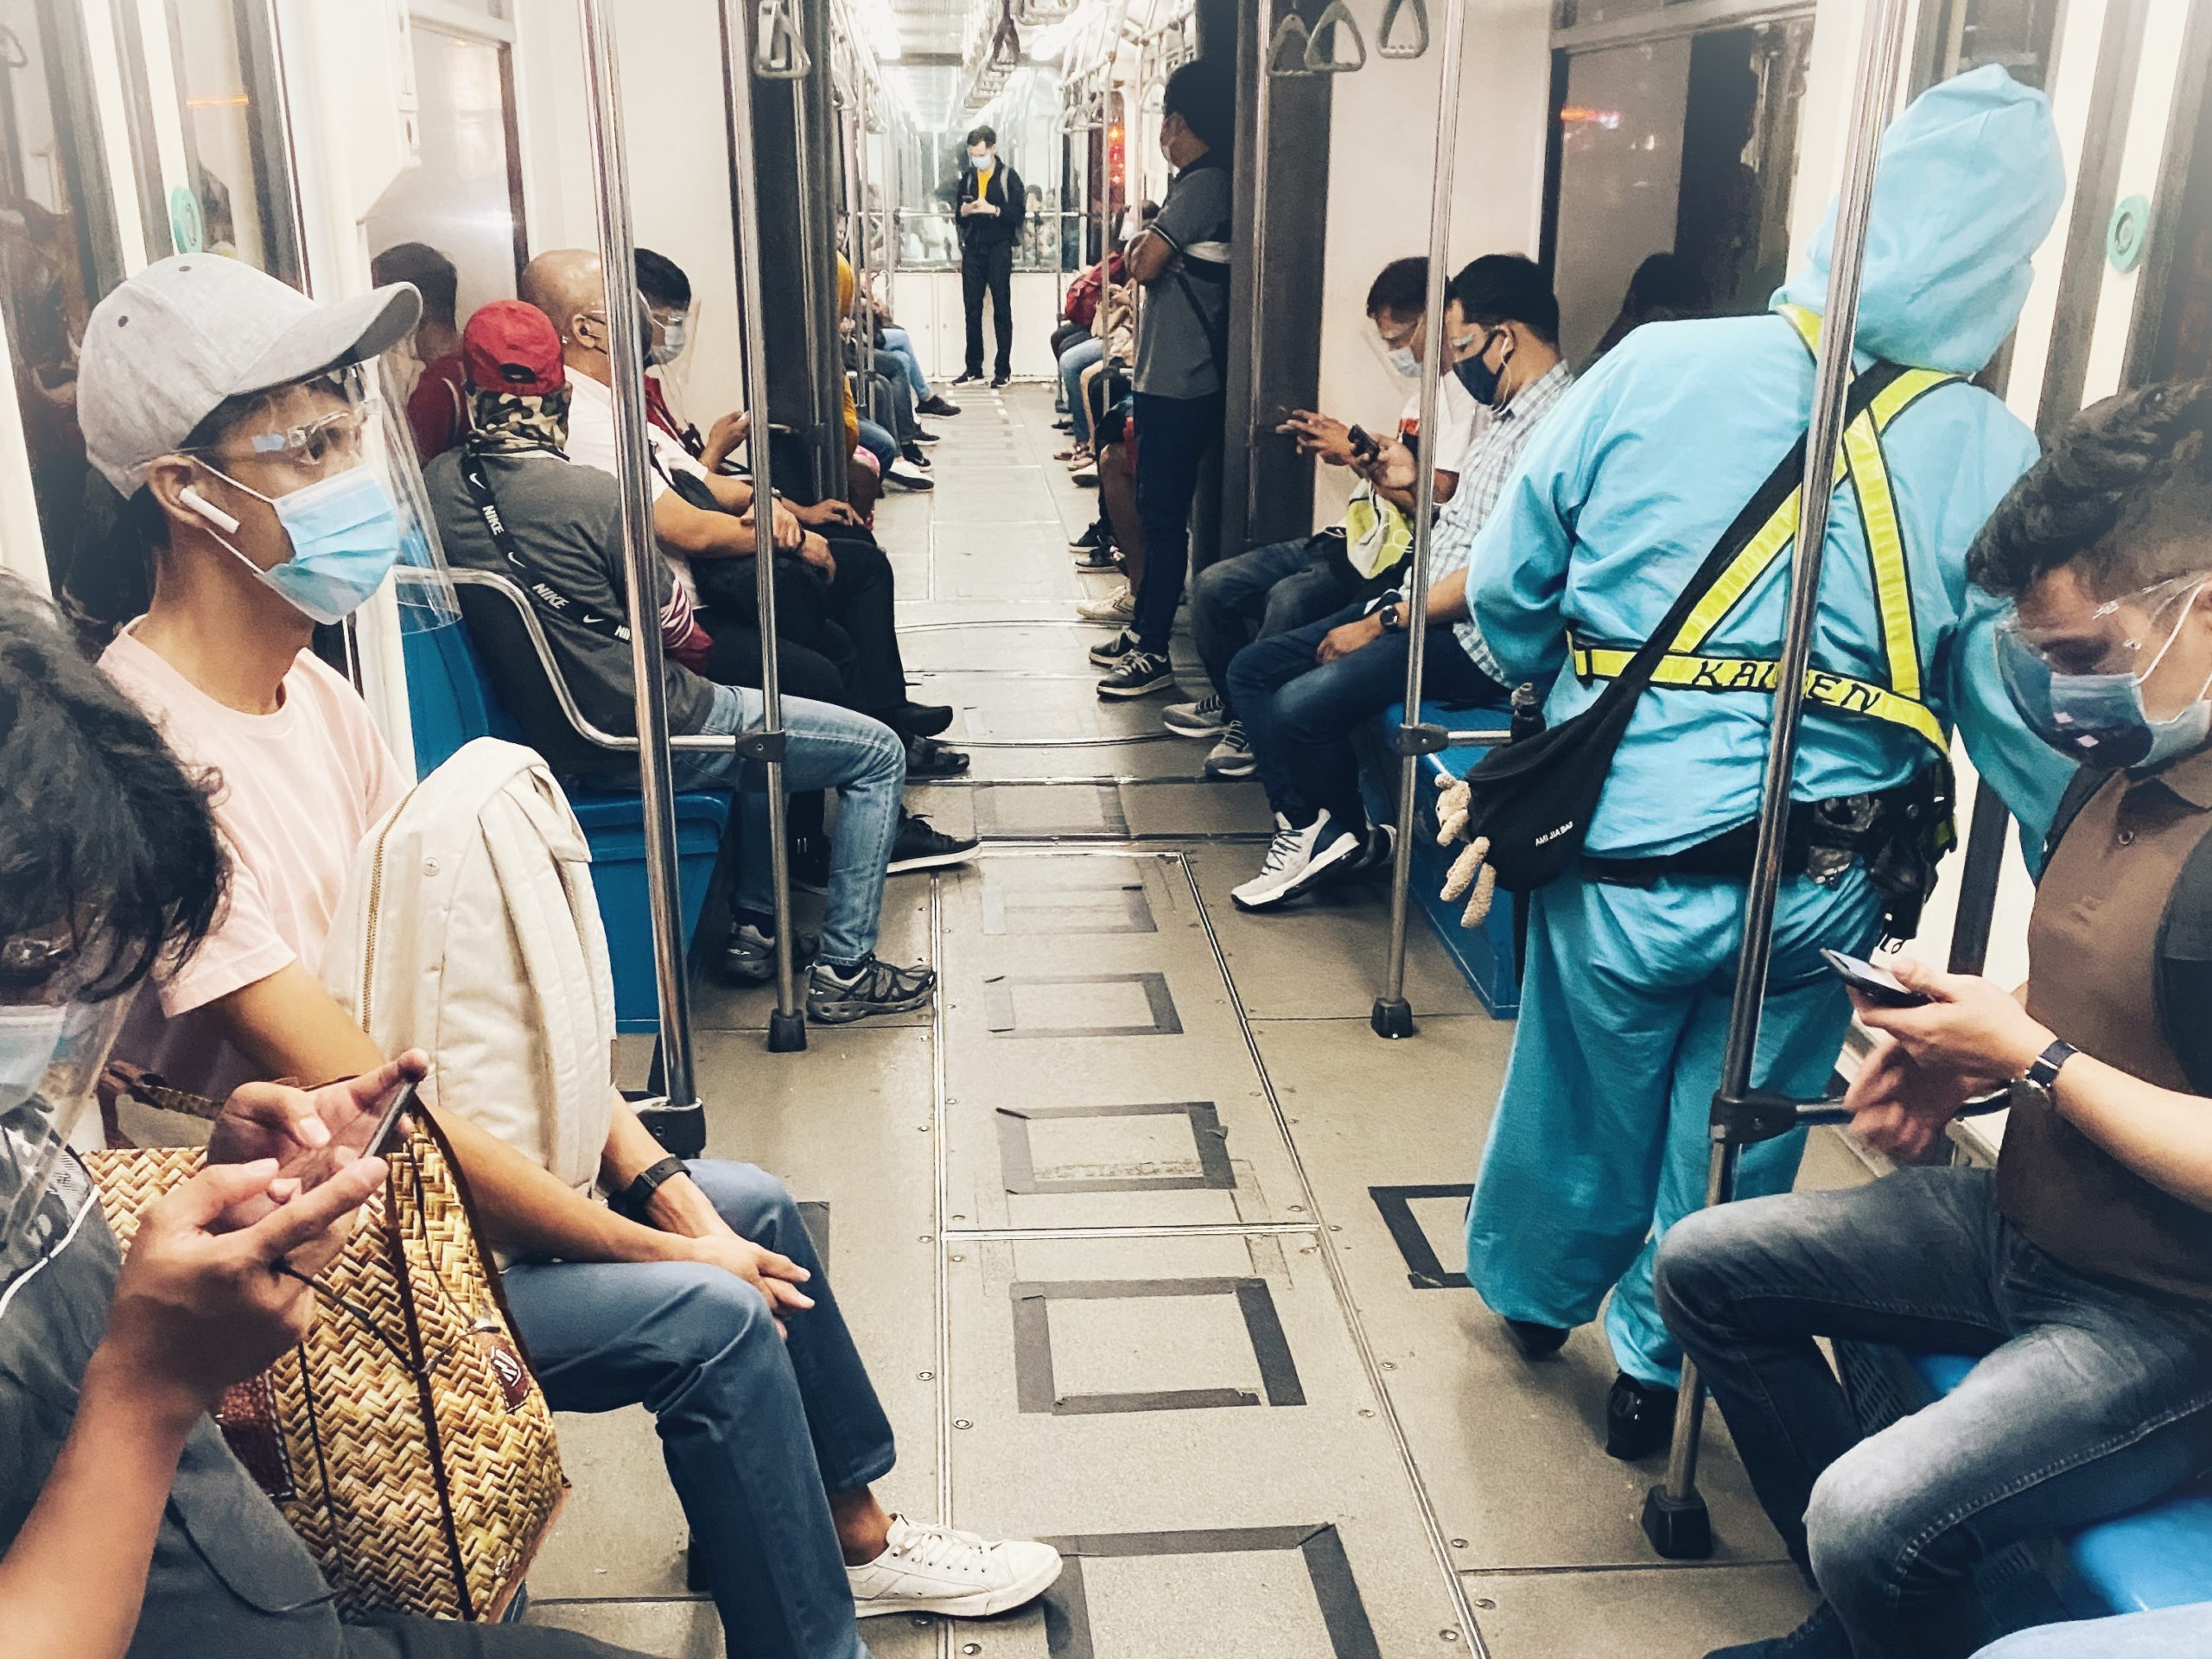 MRT ride during the pandemic by CC Lozano